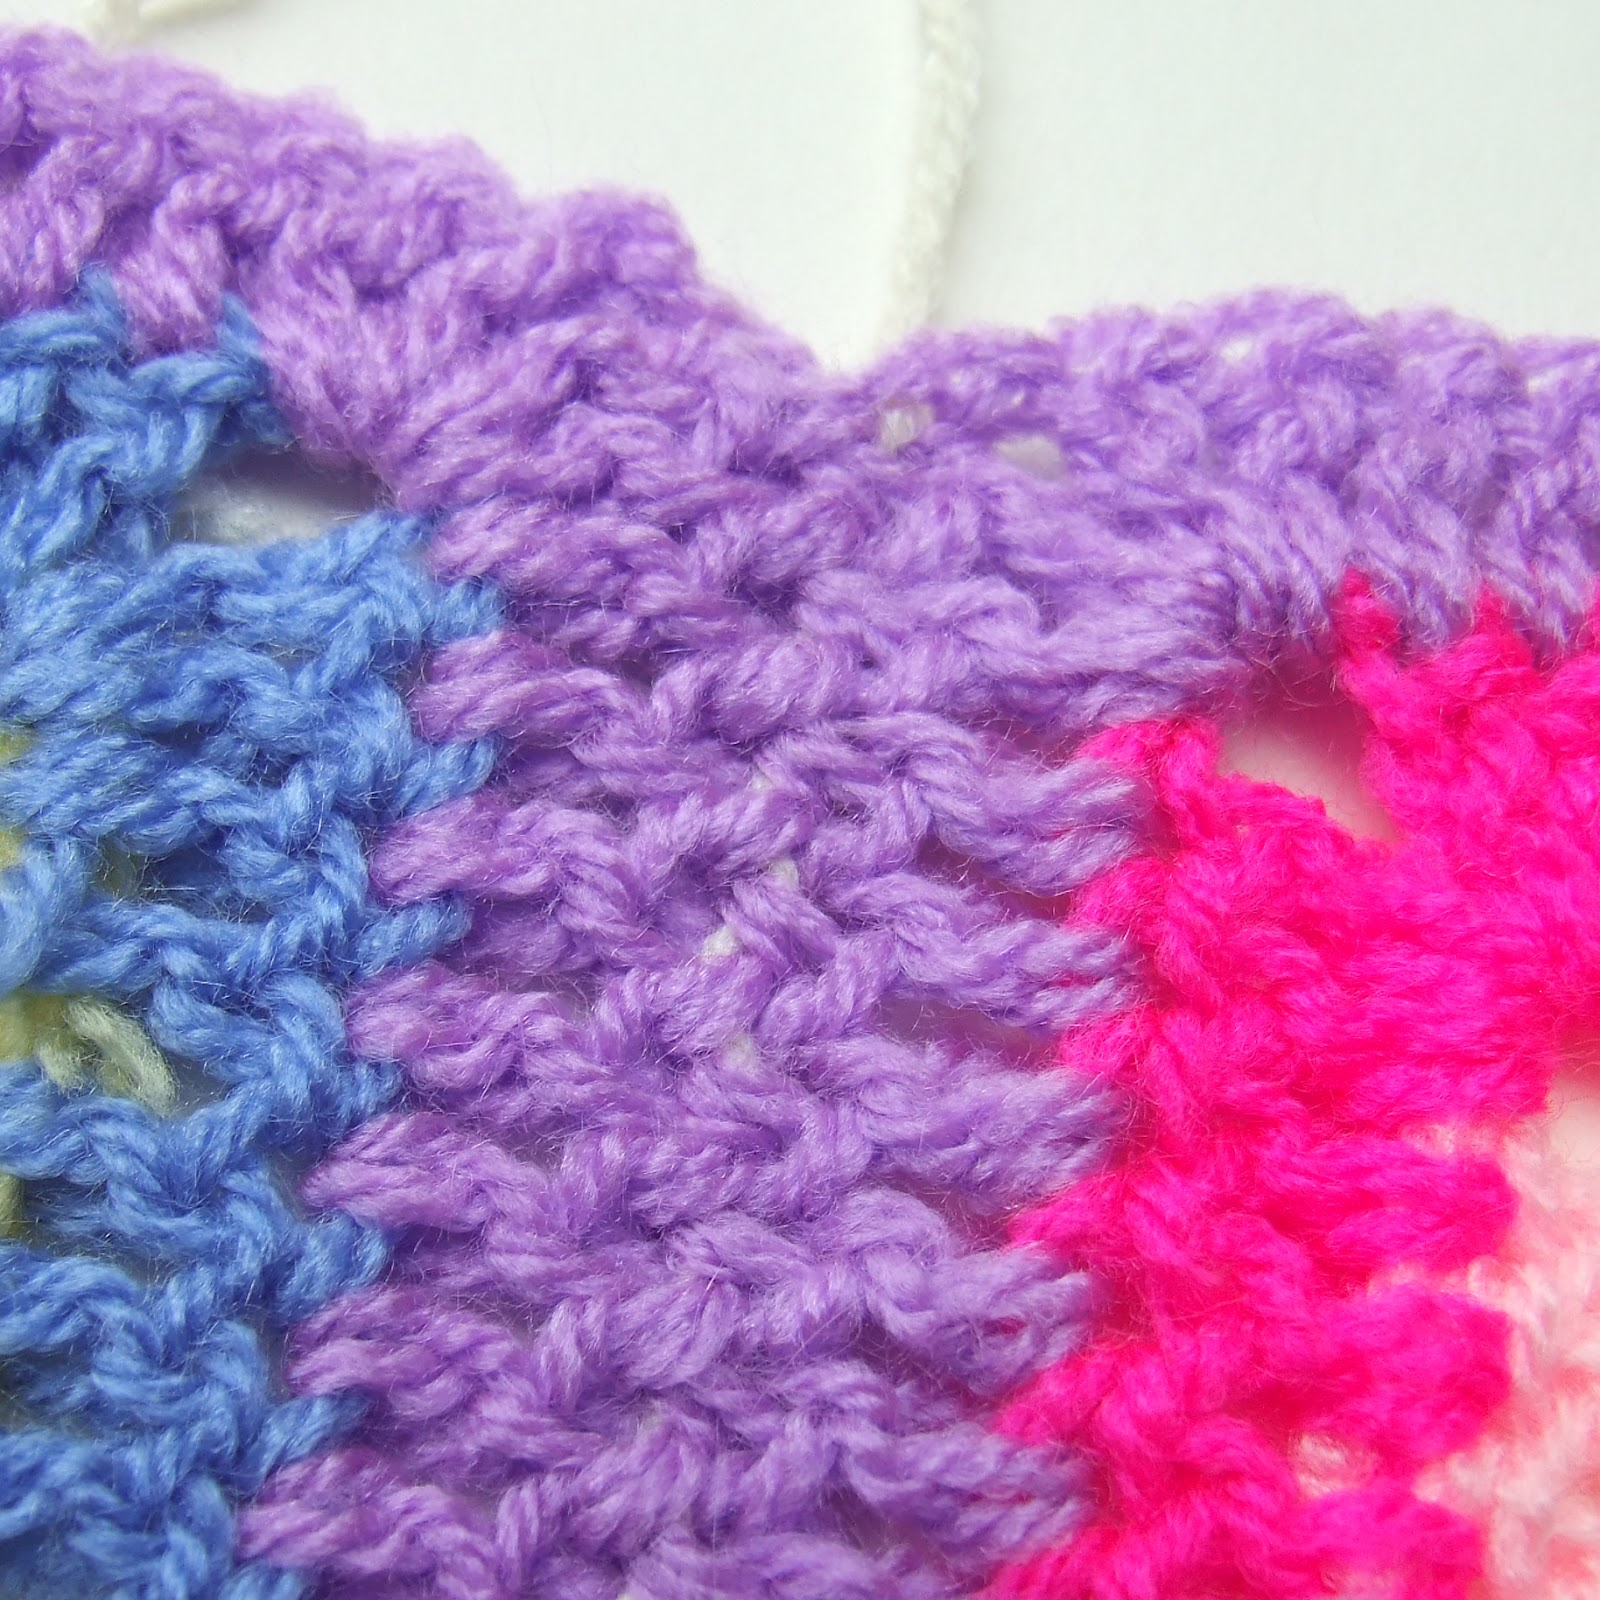 Crochet Join Stitch : Invisible Seam (Reverse Mattress Stitch) - Joining Crochet Squares